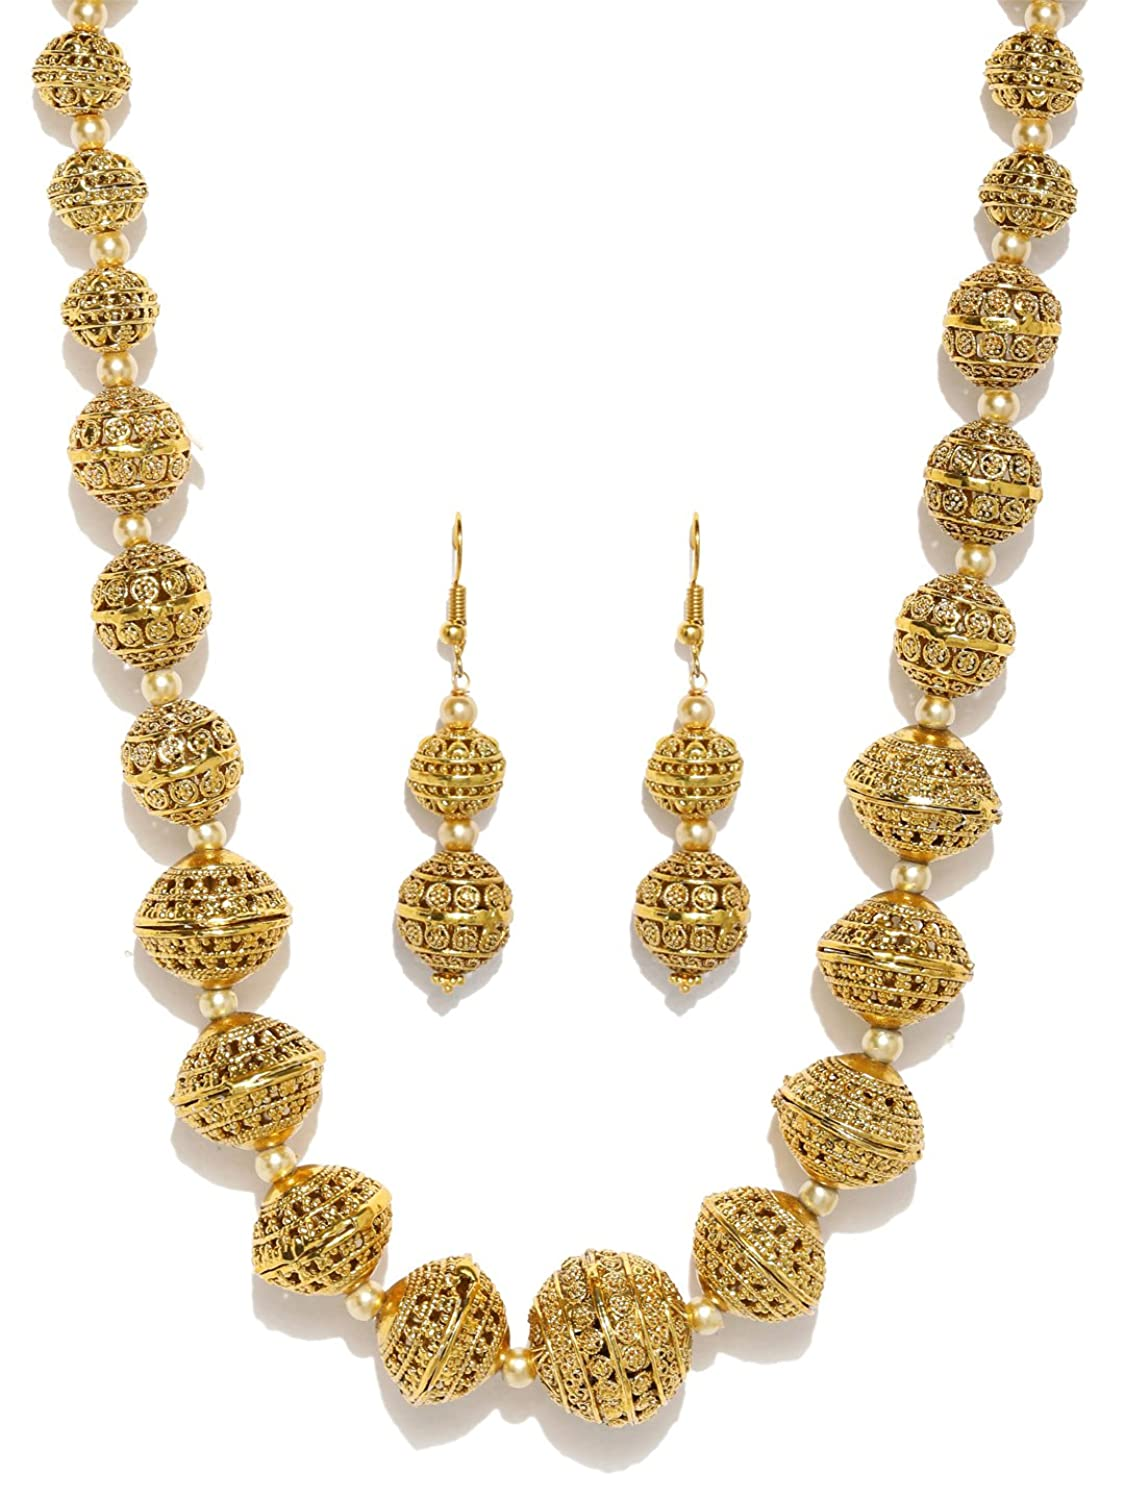 Buy Zaveri Pearls Rajwada style gold plated long beaded necklace ...